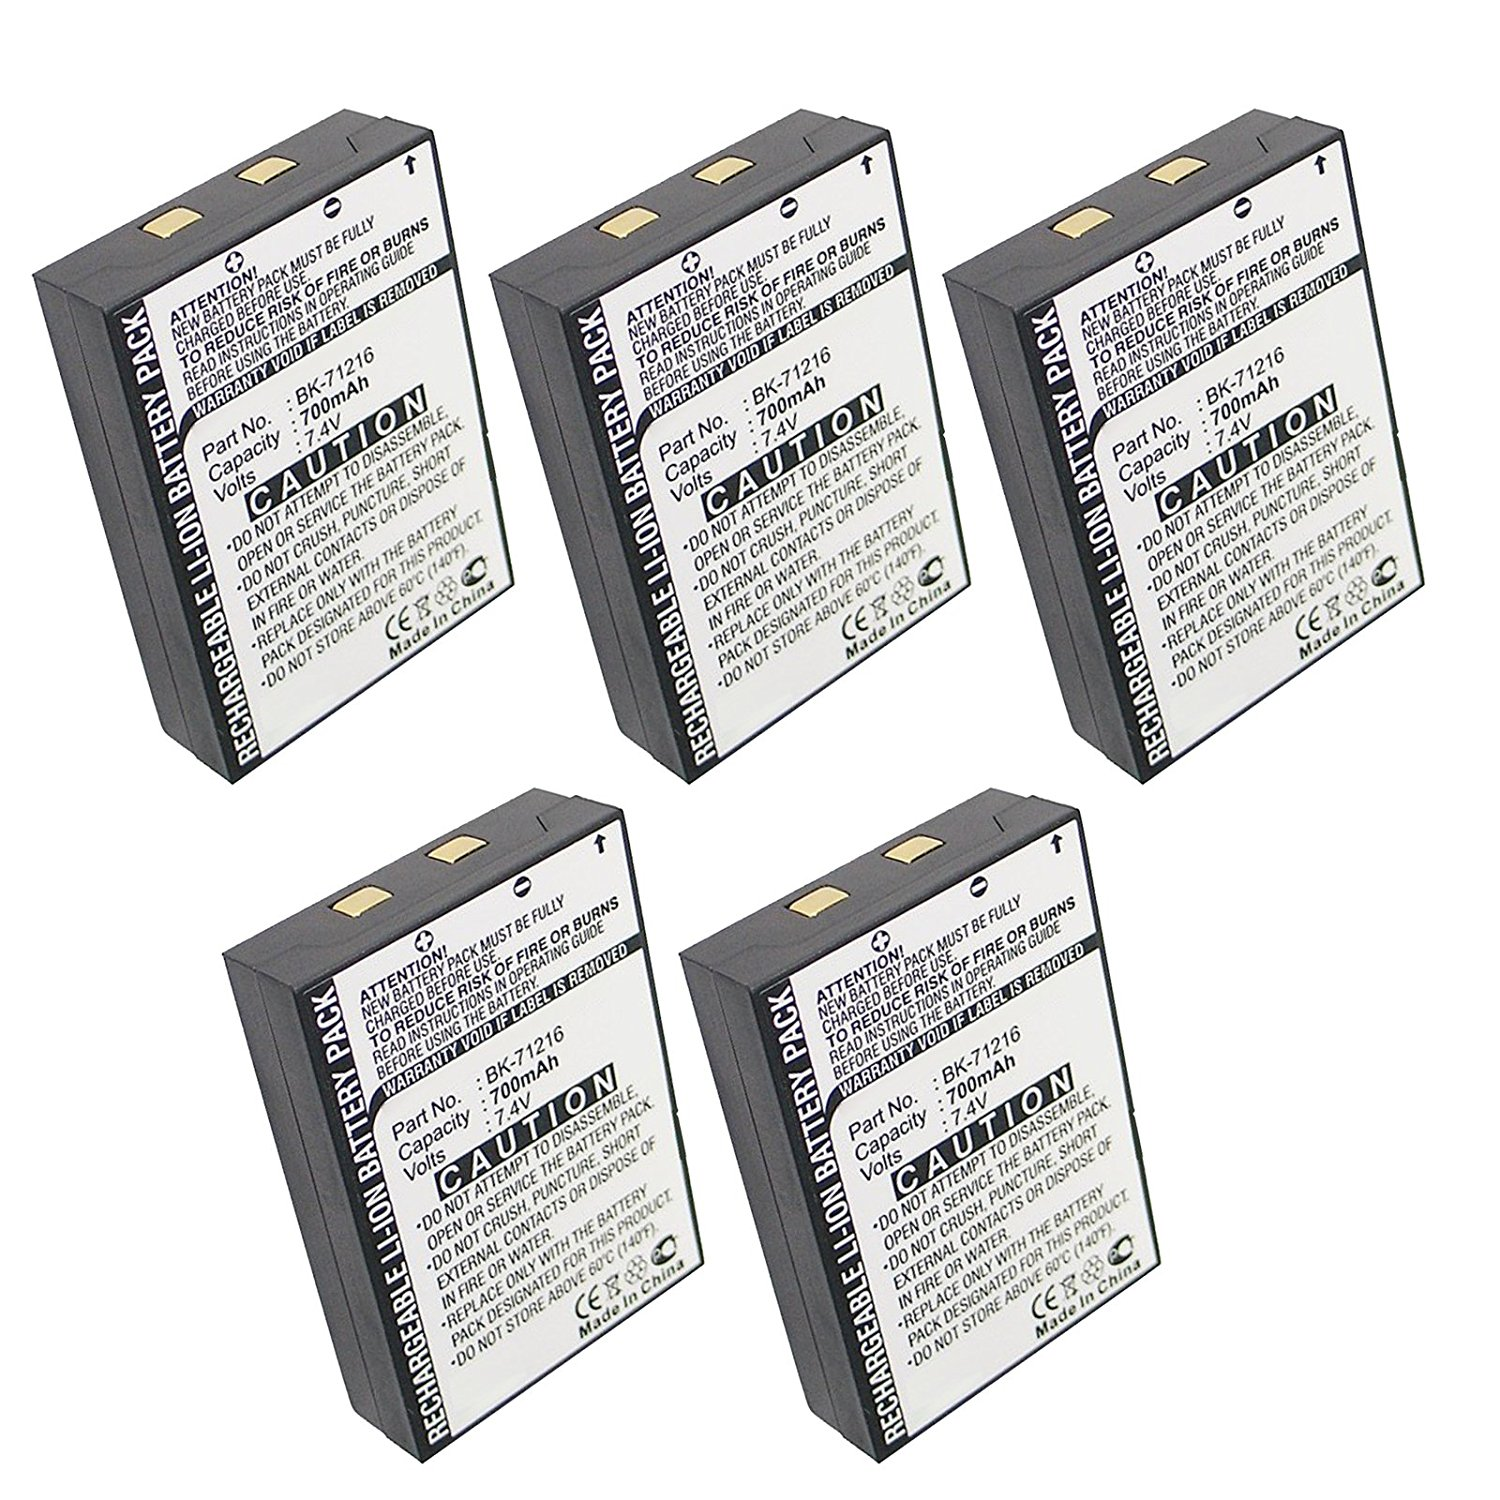 5pcs Exell FRS Two-Way Radio Battery Fits Cobra CXR 700, CXR 750, CXR 800, CXR 850, LI3900, LI3950, LI4900, LI5600, LI6000, LI6050, LI6500, LI6700, microTALK CXR700 25-Mile Radio, microTALK CXR800 27-Mile Radio , microTALK LI3900-2 DX 14-Mile Radio, microTALK LI4900-2 WX 18-Mile Radio , microTALK